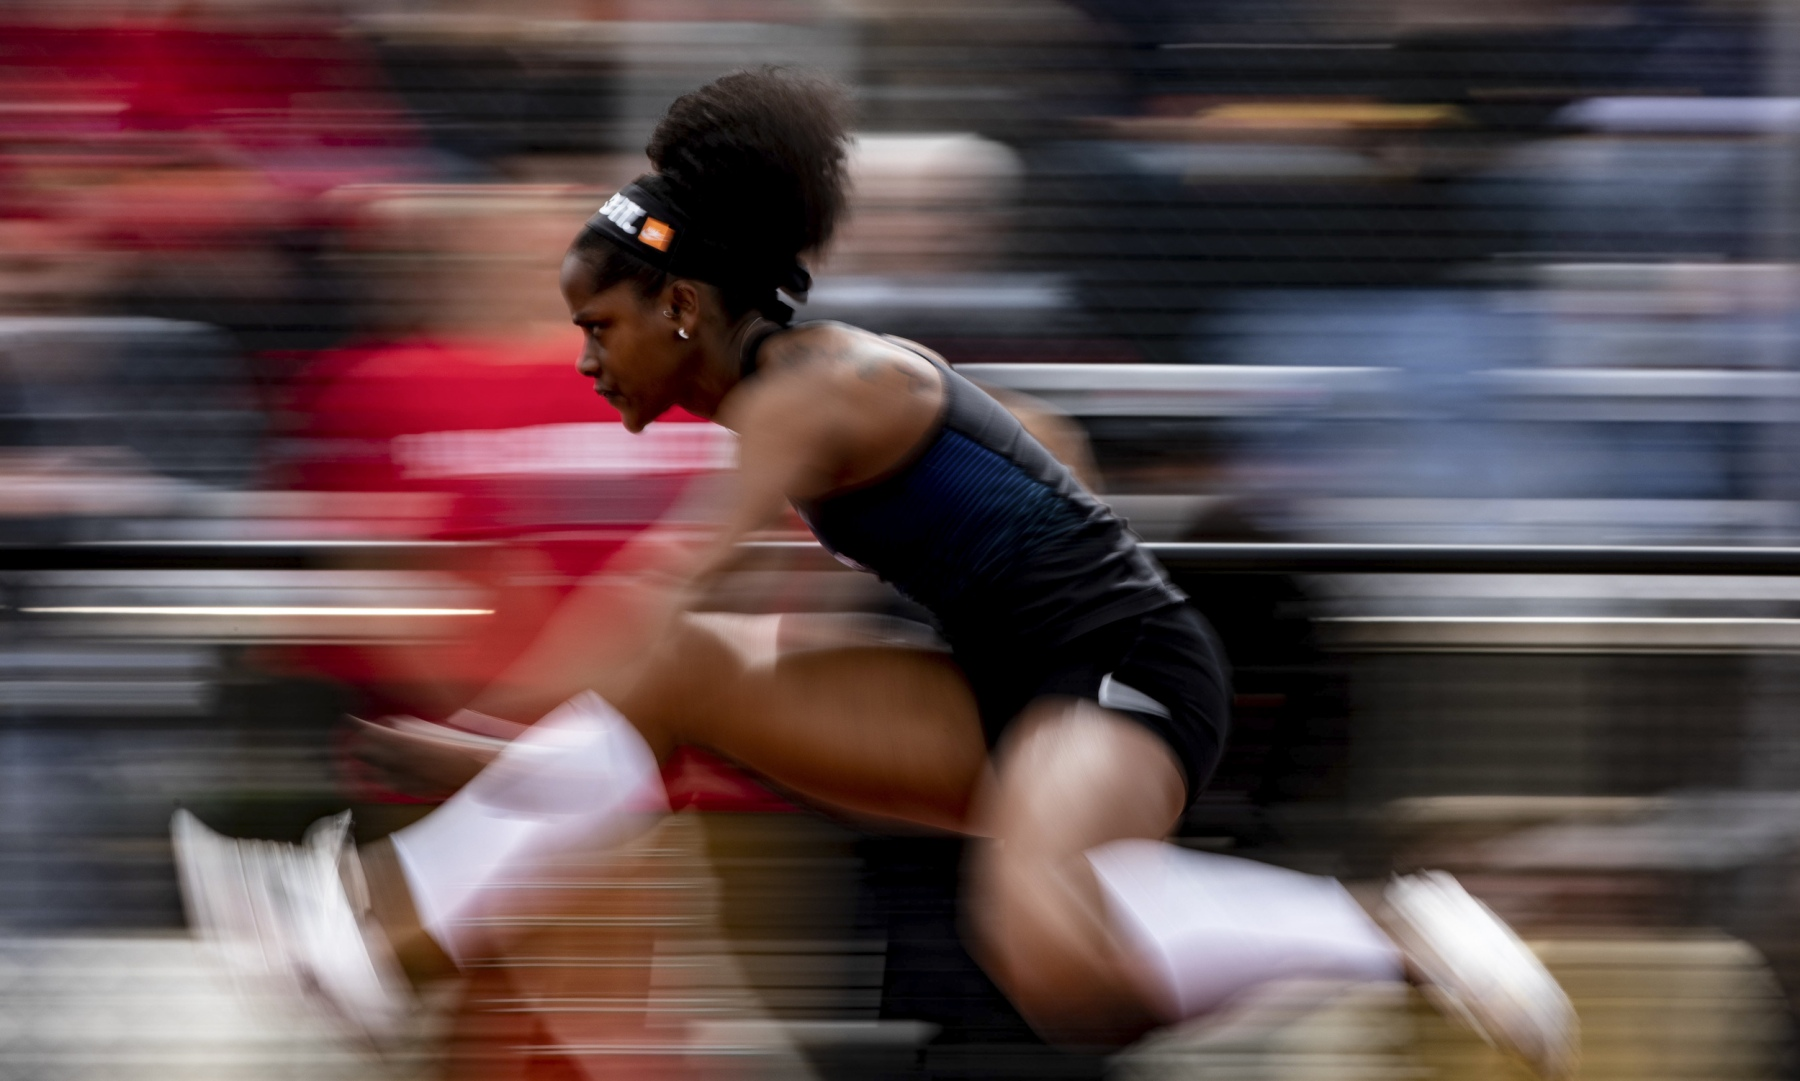 Tiara Wiggins runs in the Women's 100m Hurdles Saturday, April 13, 2019 in Muncie, Ind. Wiggins had a 14.19 time and took third place overall.